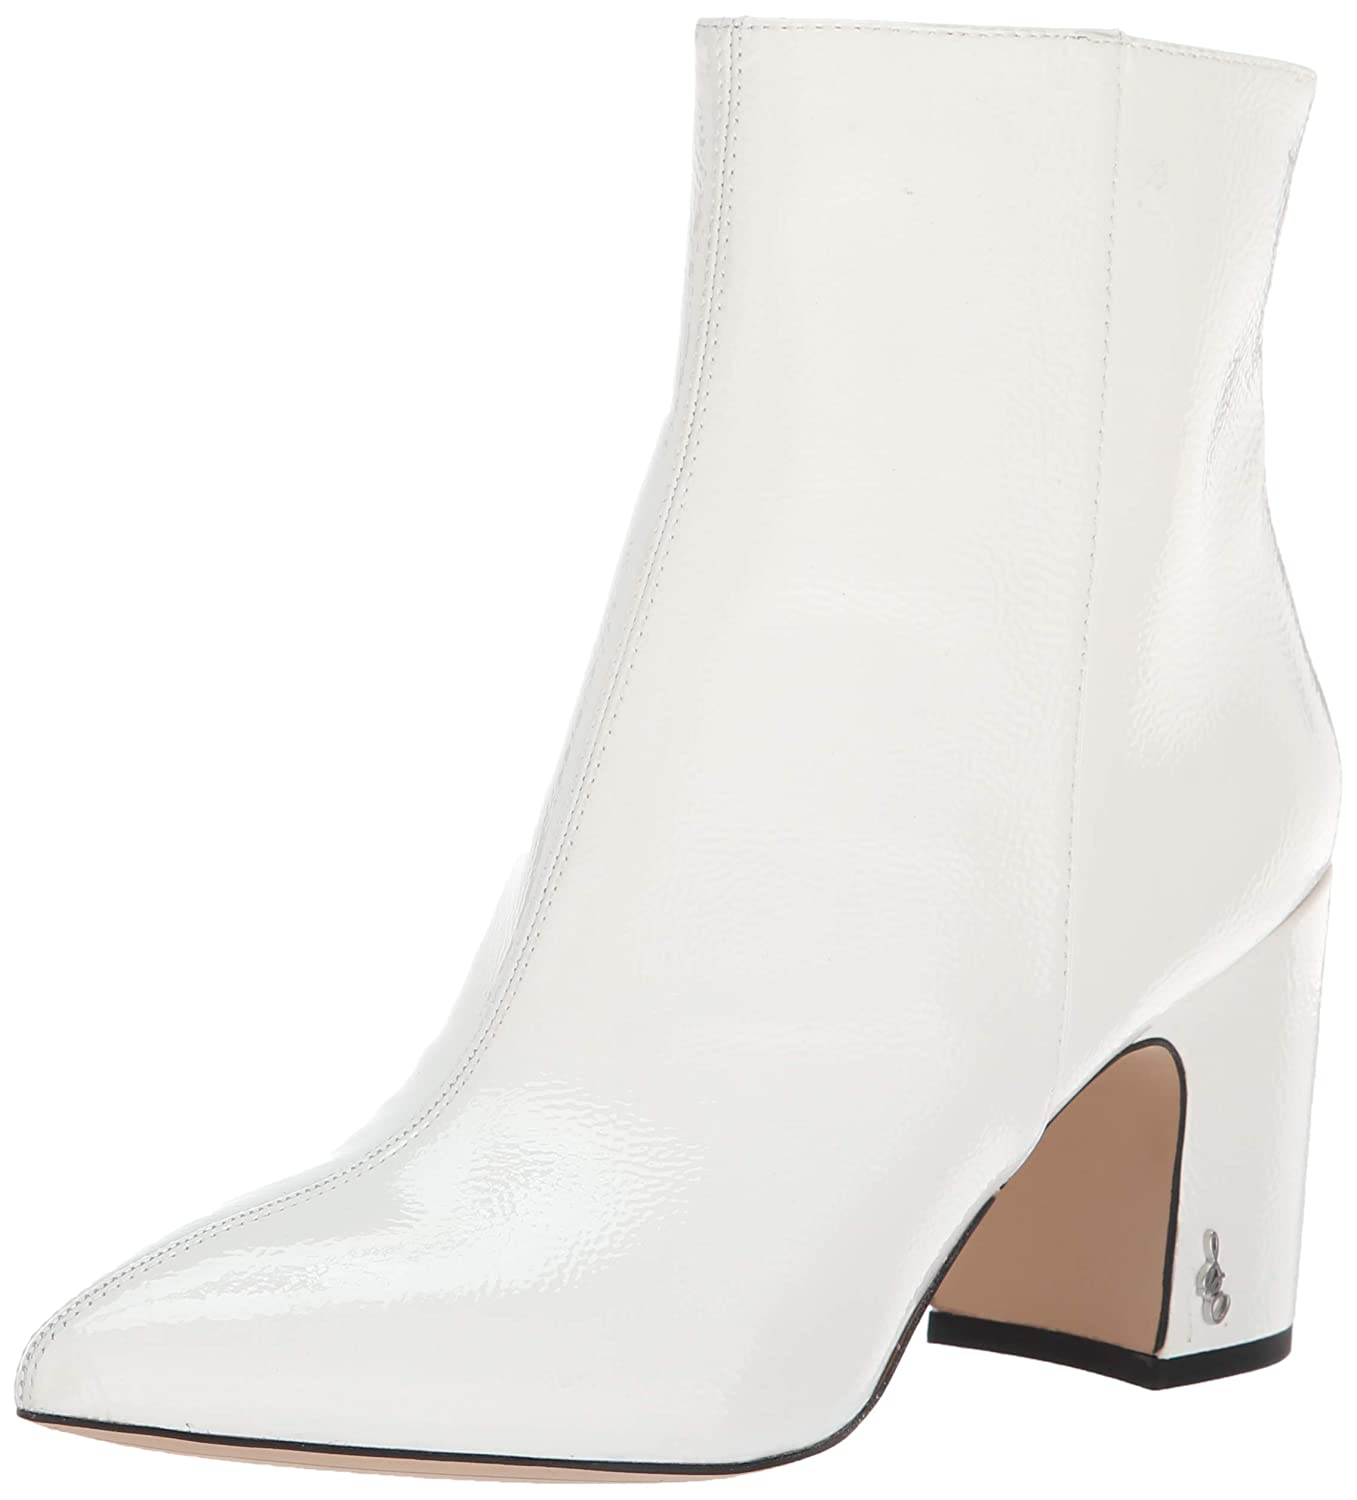 White Patent Sam Edelman Womens Hilty 2 Boots